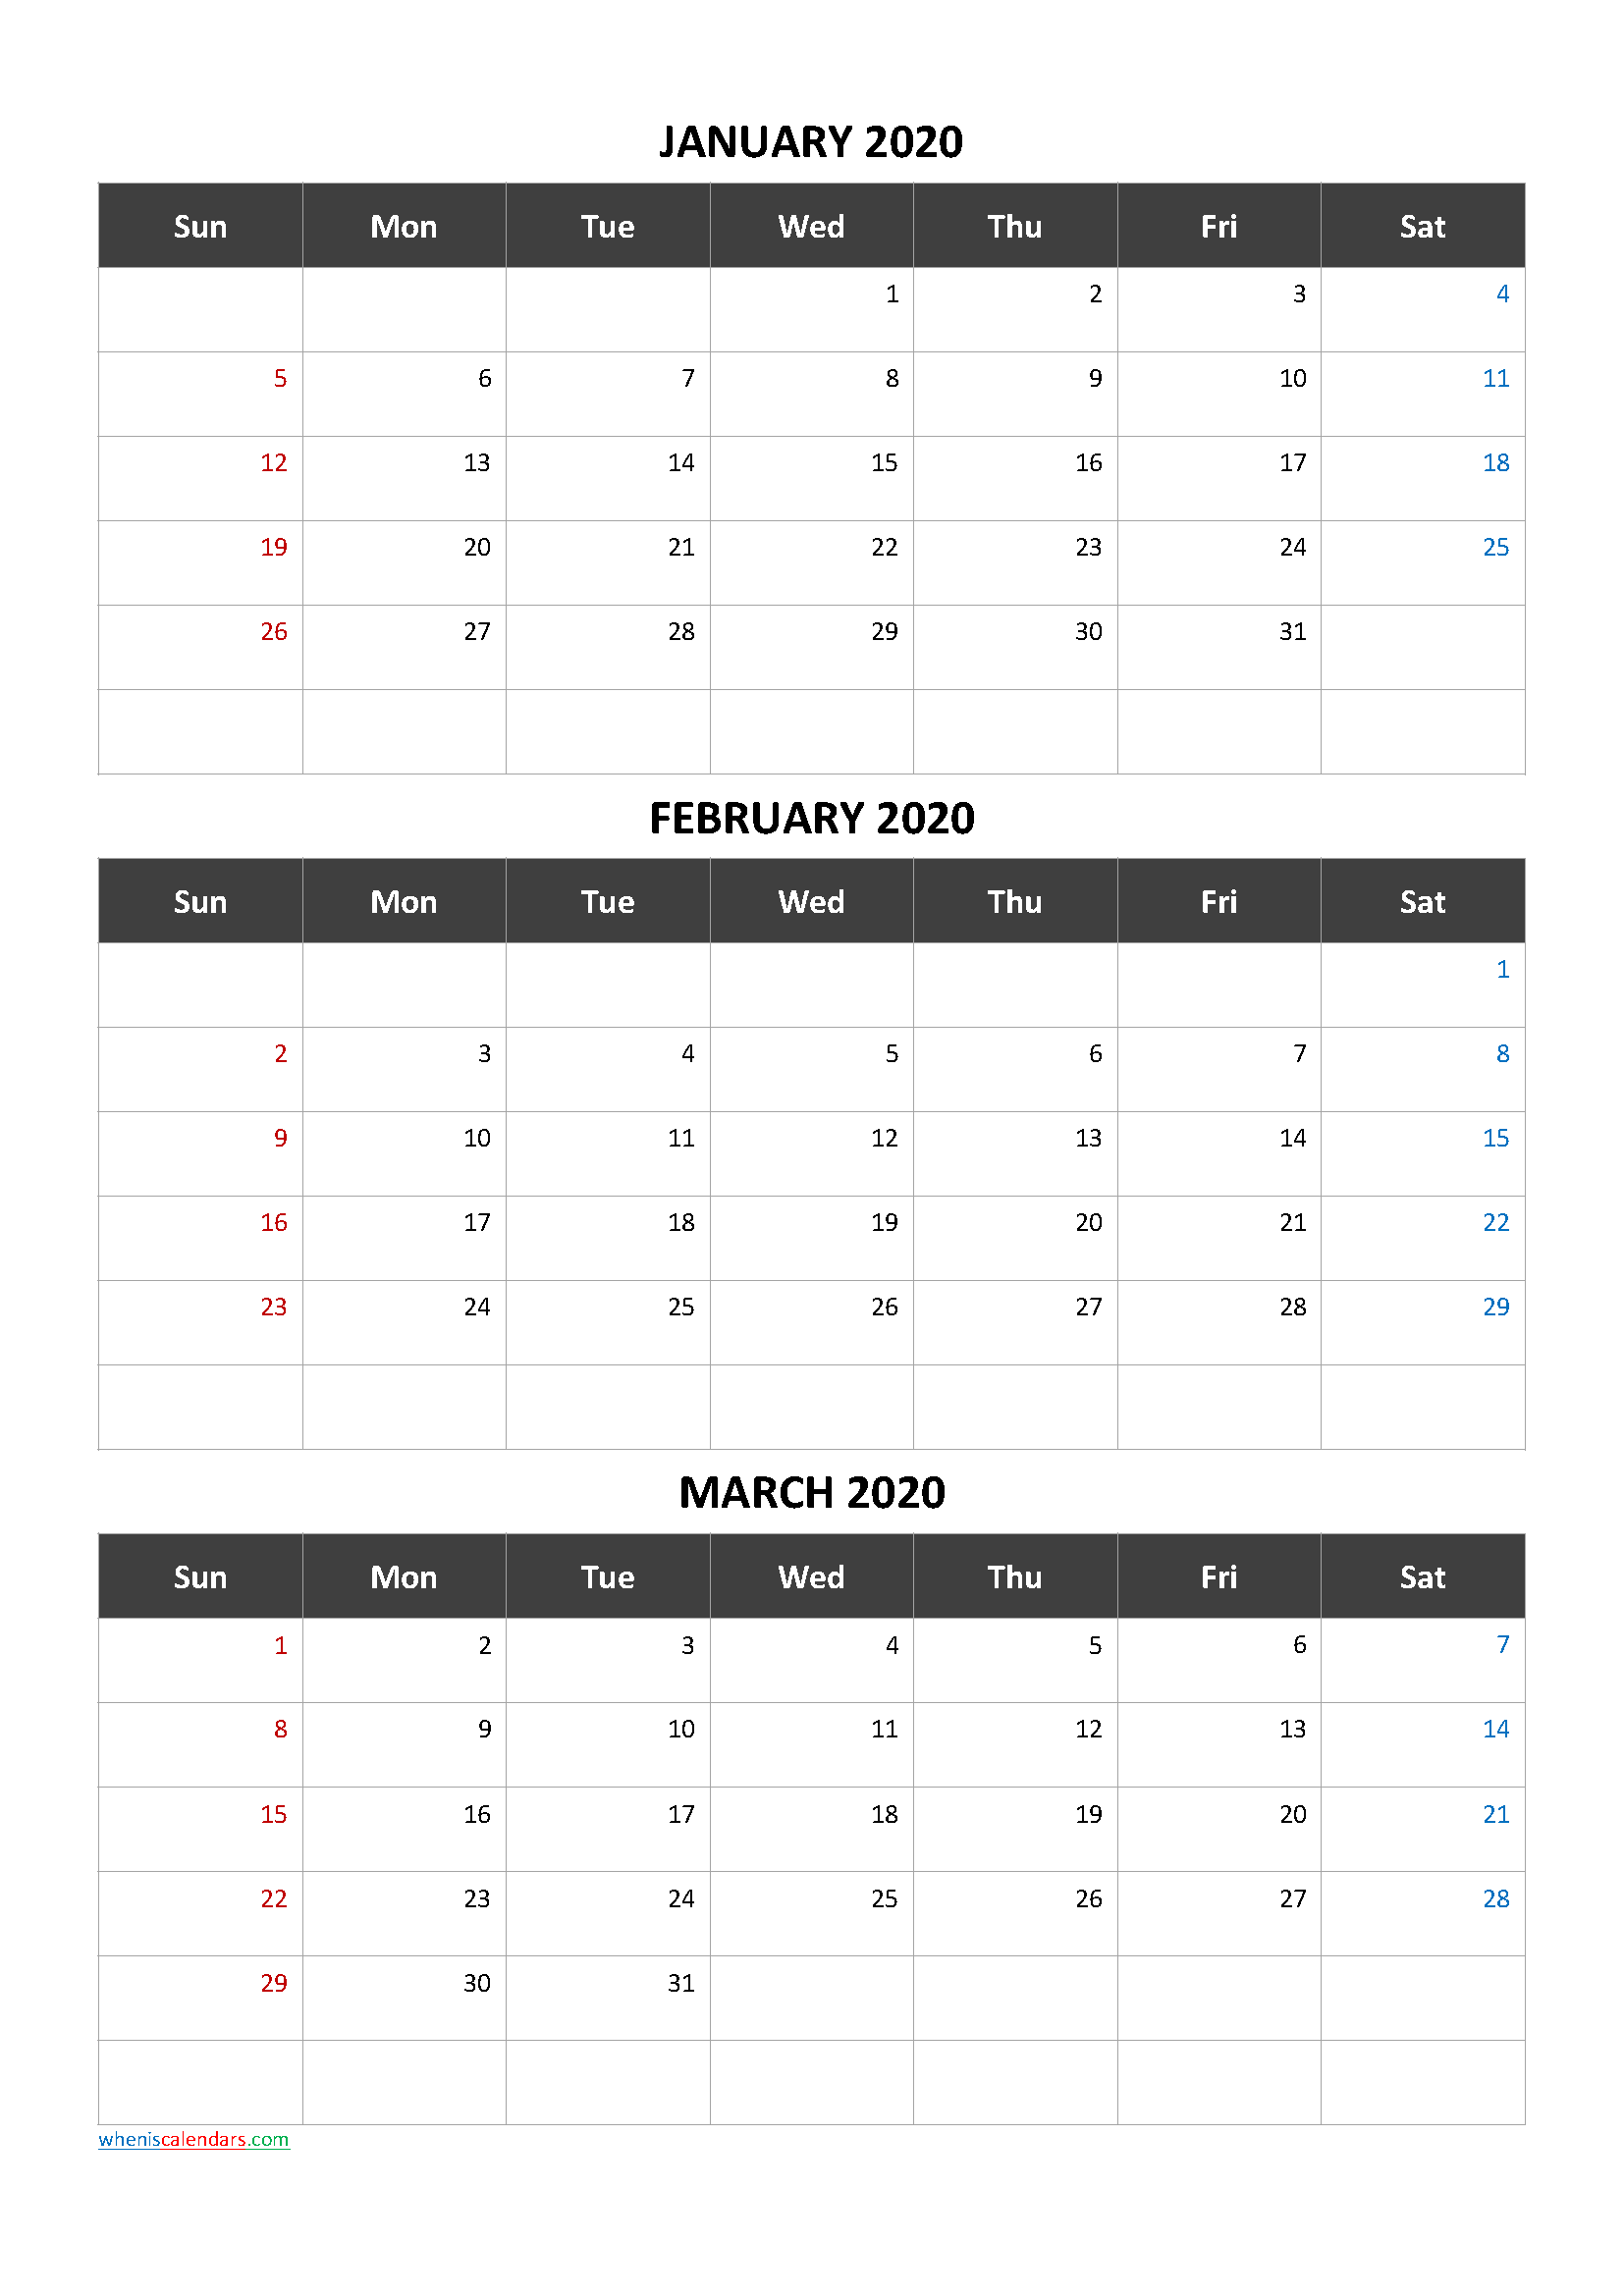 Free Printable 3 Month Calendar2020 January February March